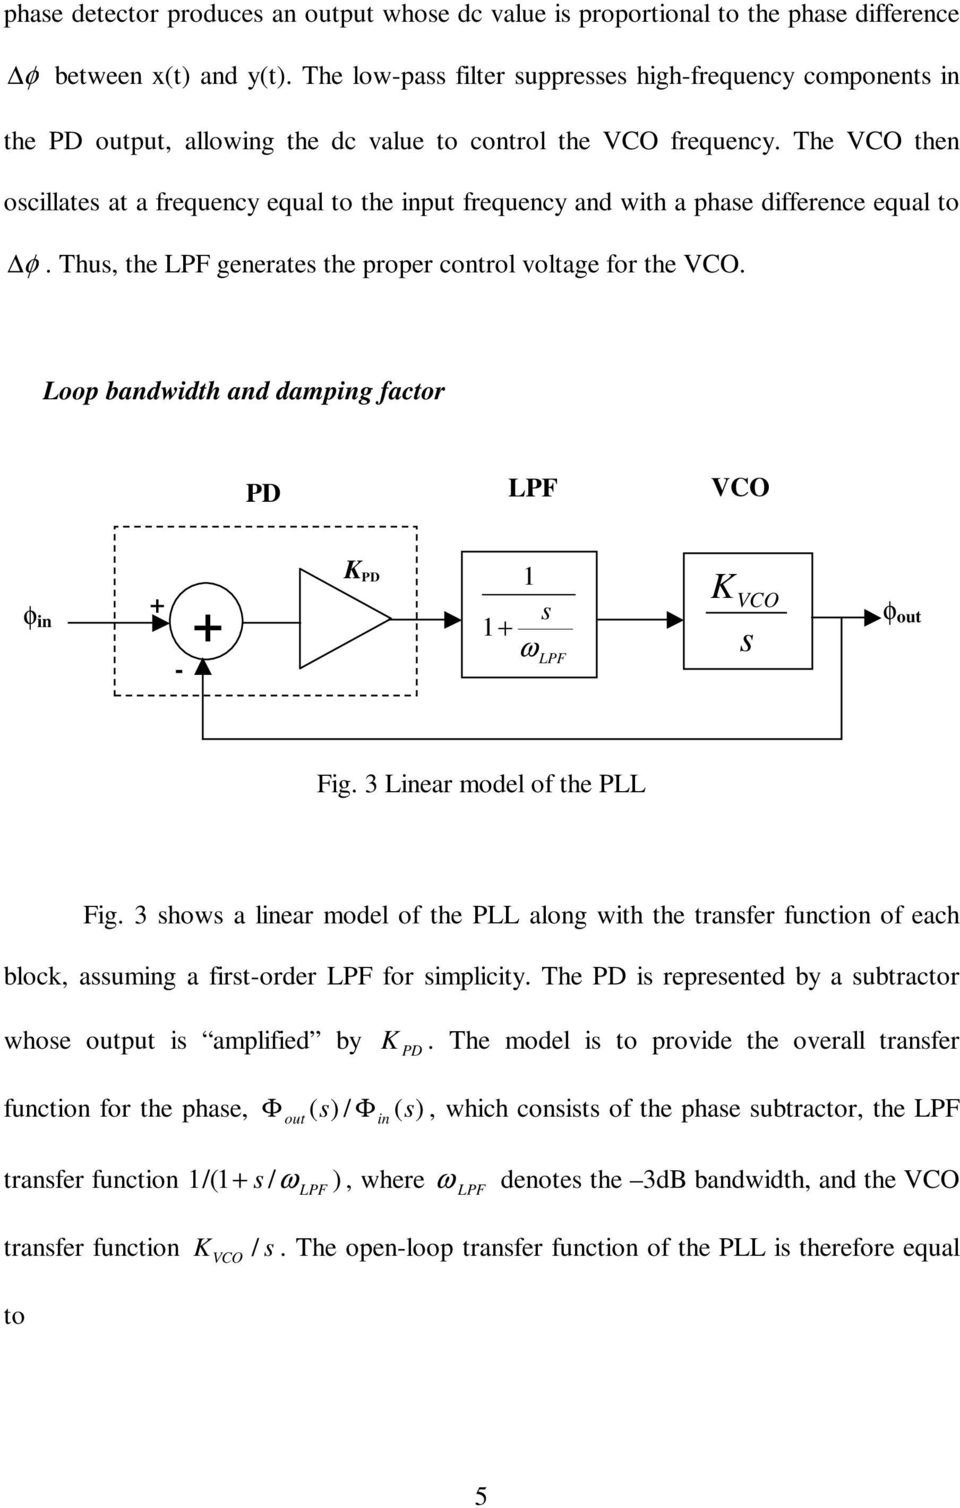 The VCO then oscillates at a frequency equal to the input frequency and with a phase difference equal to φ. Thus, the LPF generates the proper control voltage for the VCO.